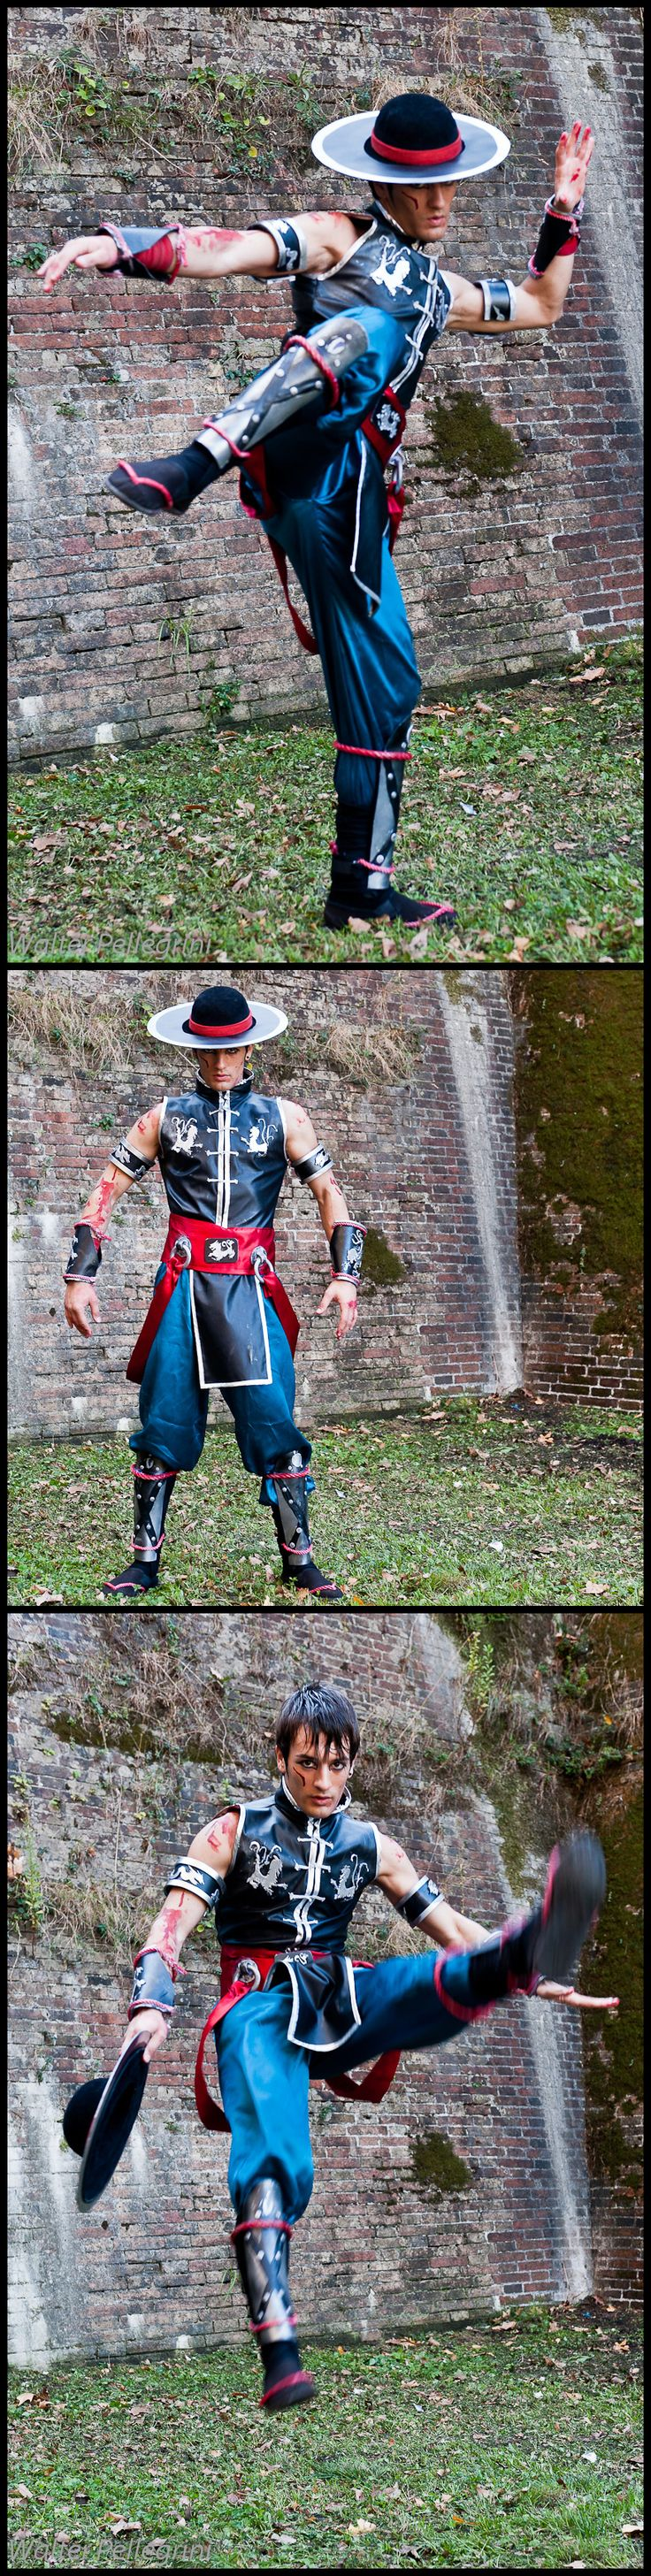 Mortal Kombat | Lucca Comics & Games 2011